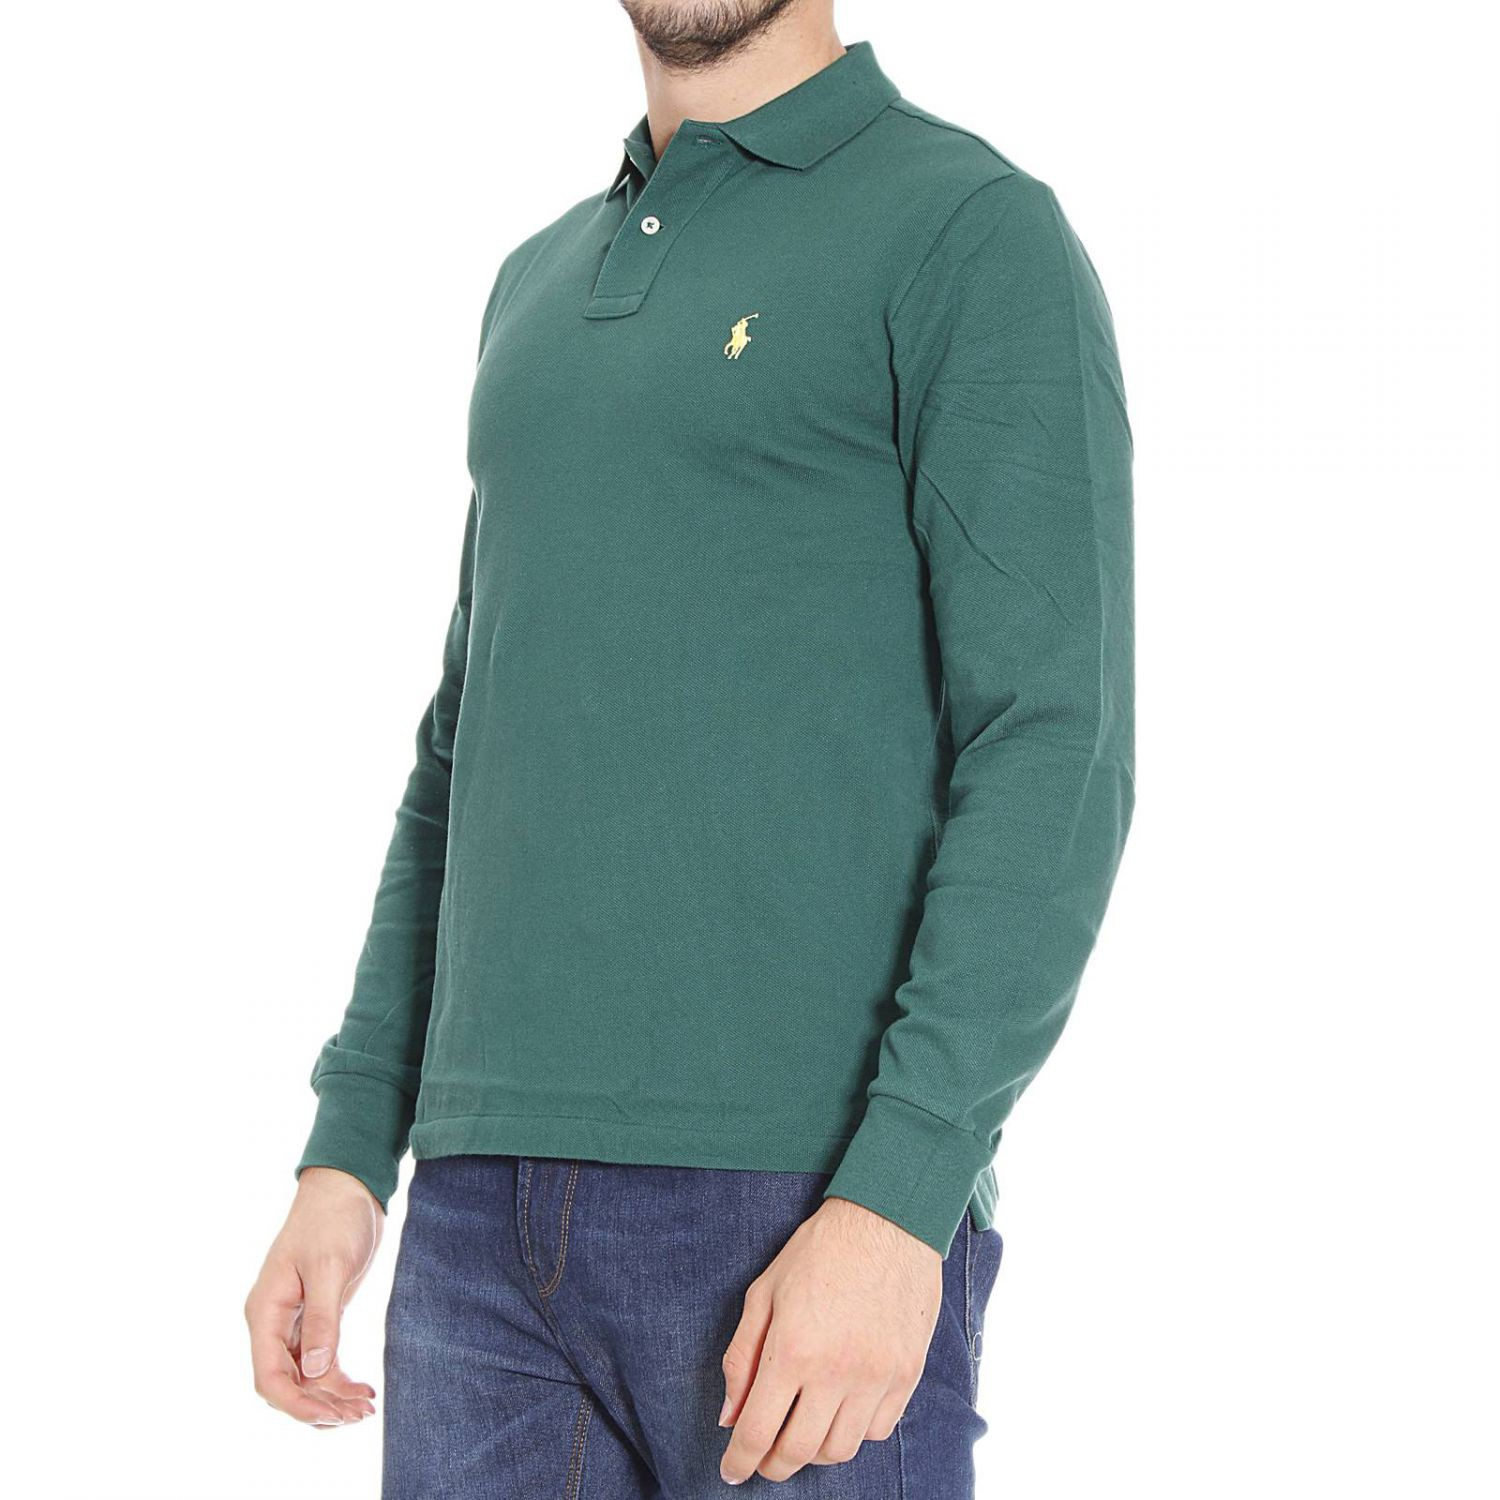 polo ralph lauren t shirt in green for men forest green. Black Bedroom Furniture Sets. Home Design Ideas